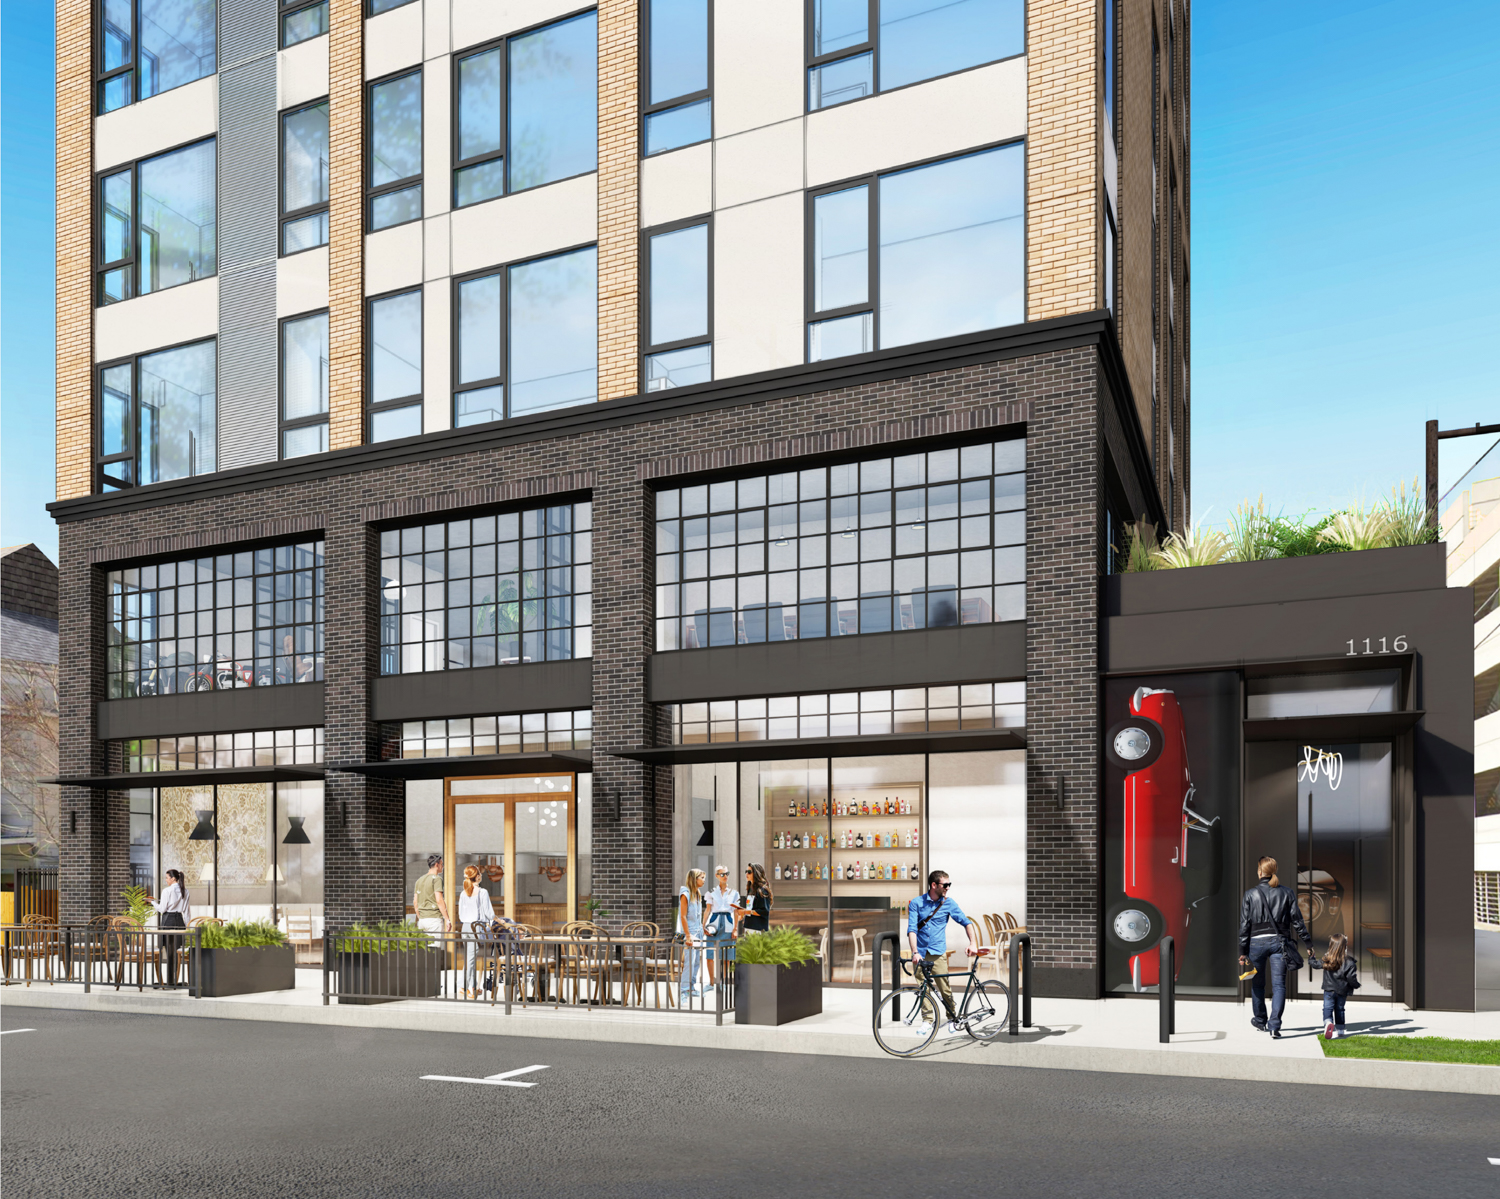 1116 18th Street ground-level retail and residential entrance, design by C2K Architecture